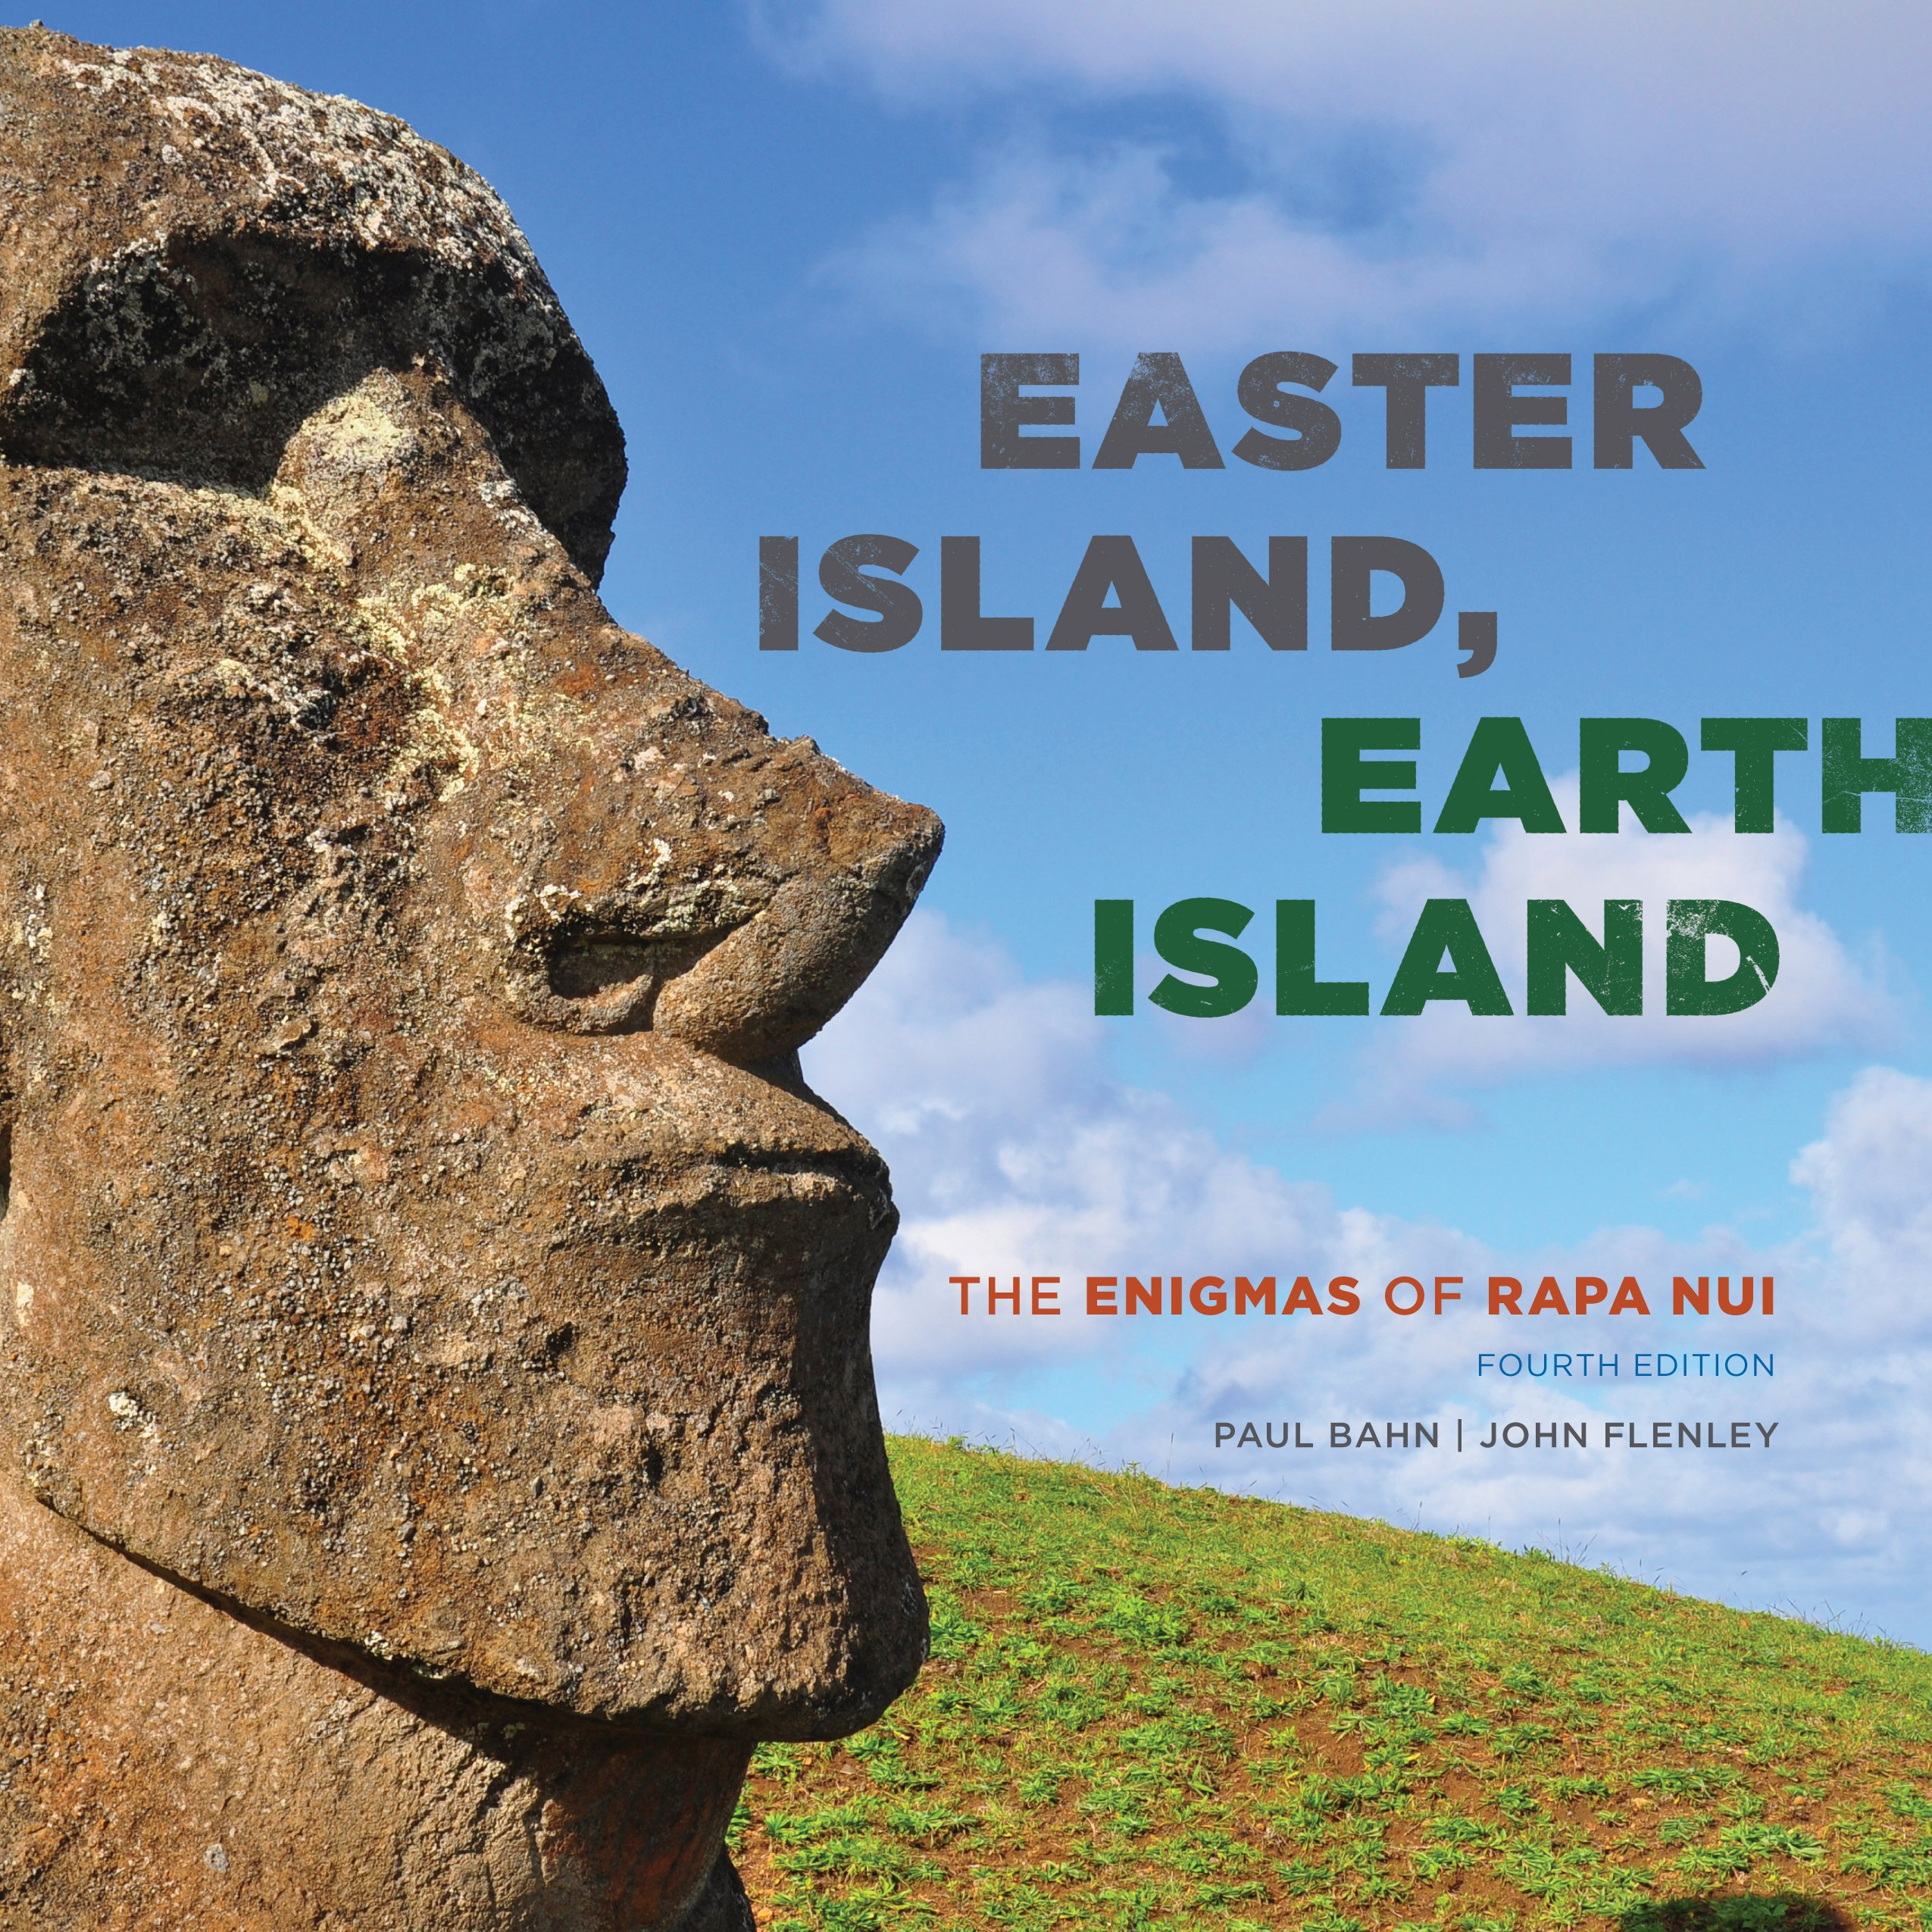 Easter Island, Earth Island: The Enigmas of Rapa Nui by Rowman & Littlefield Publishers